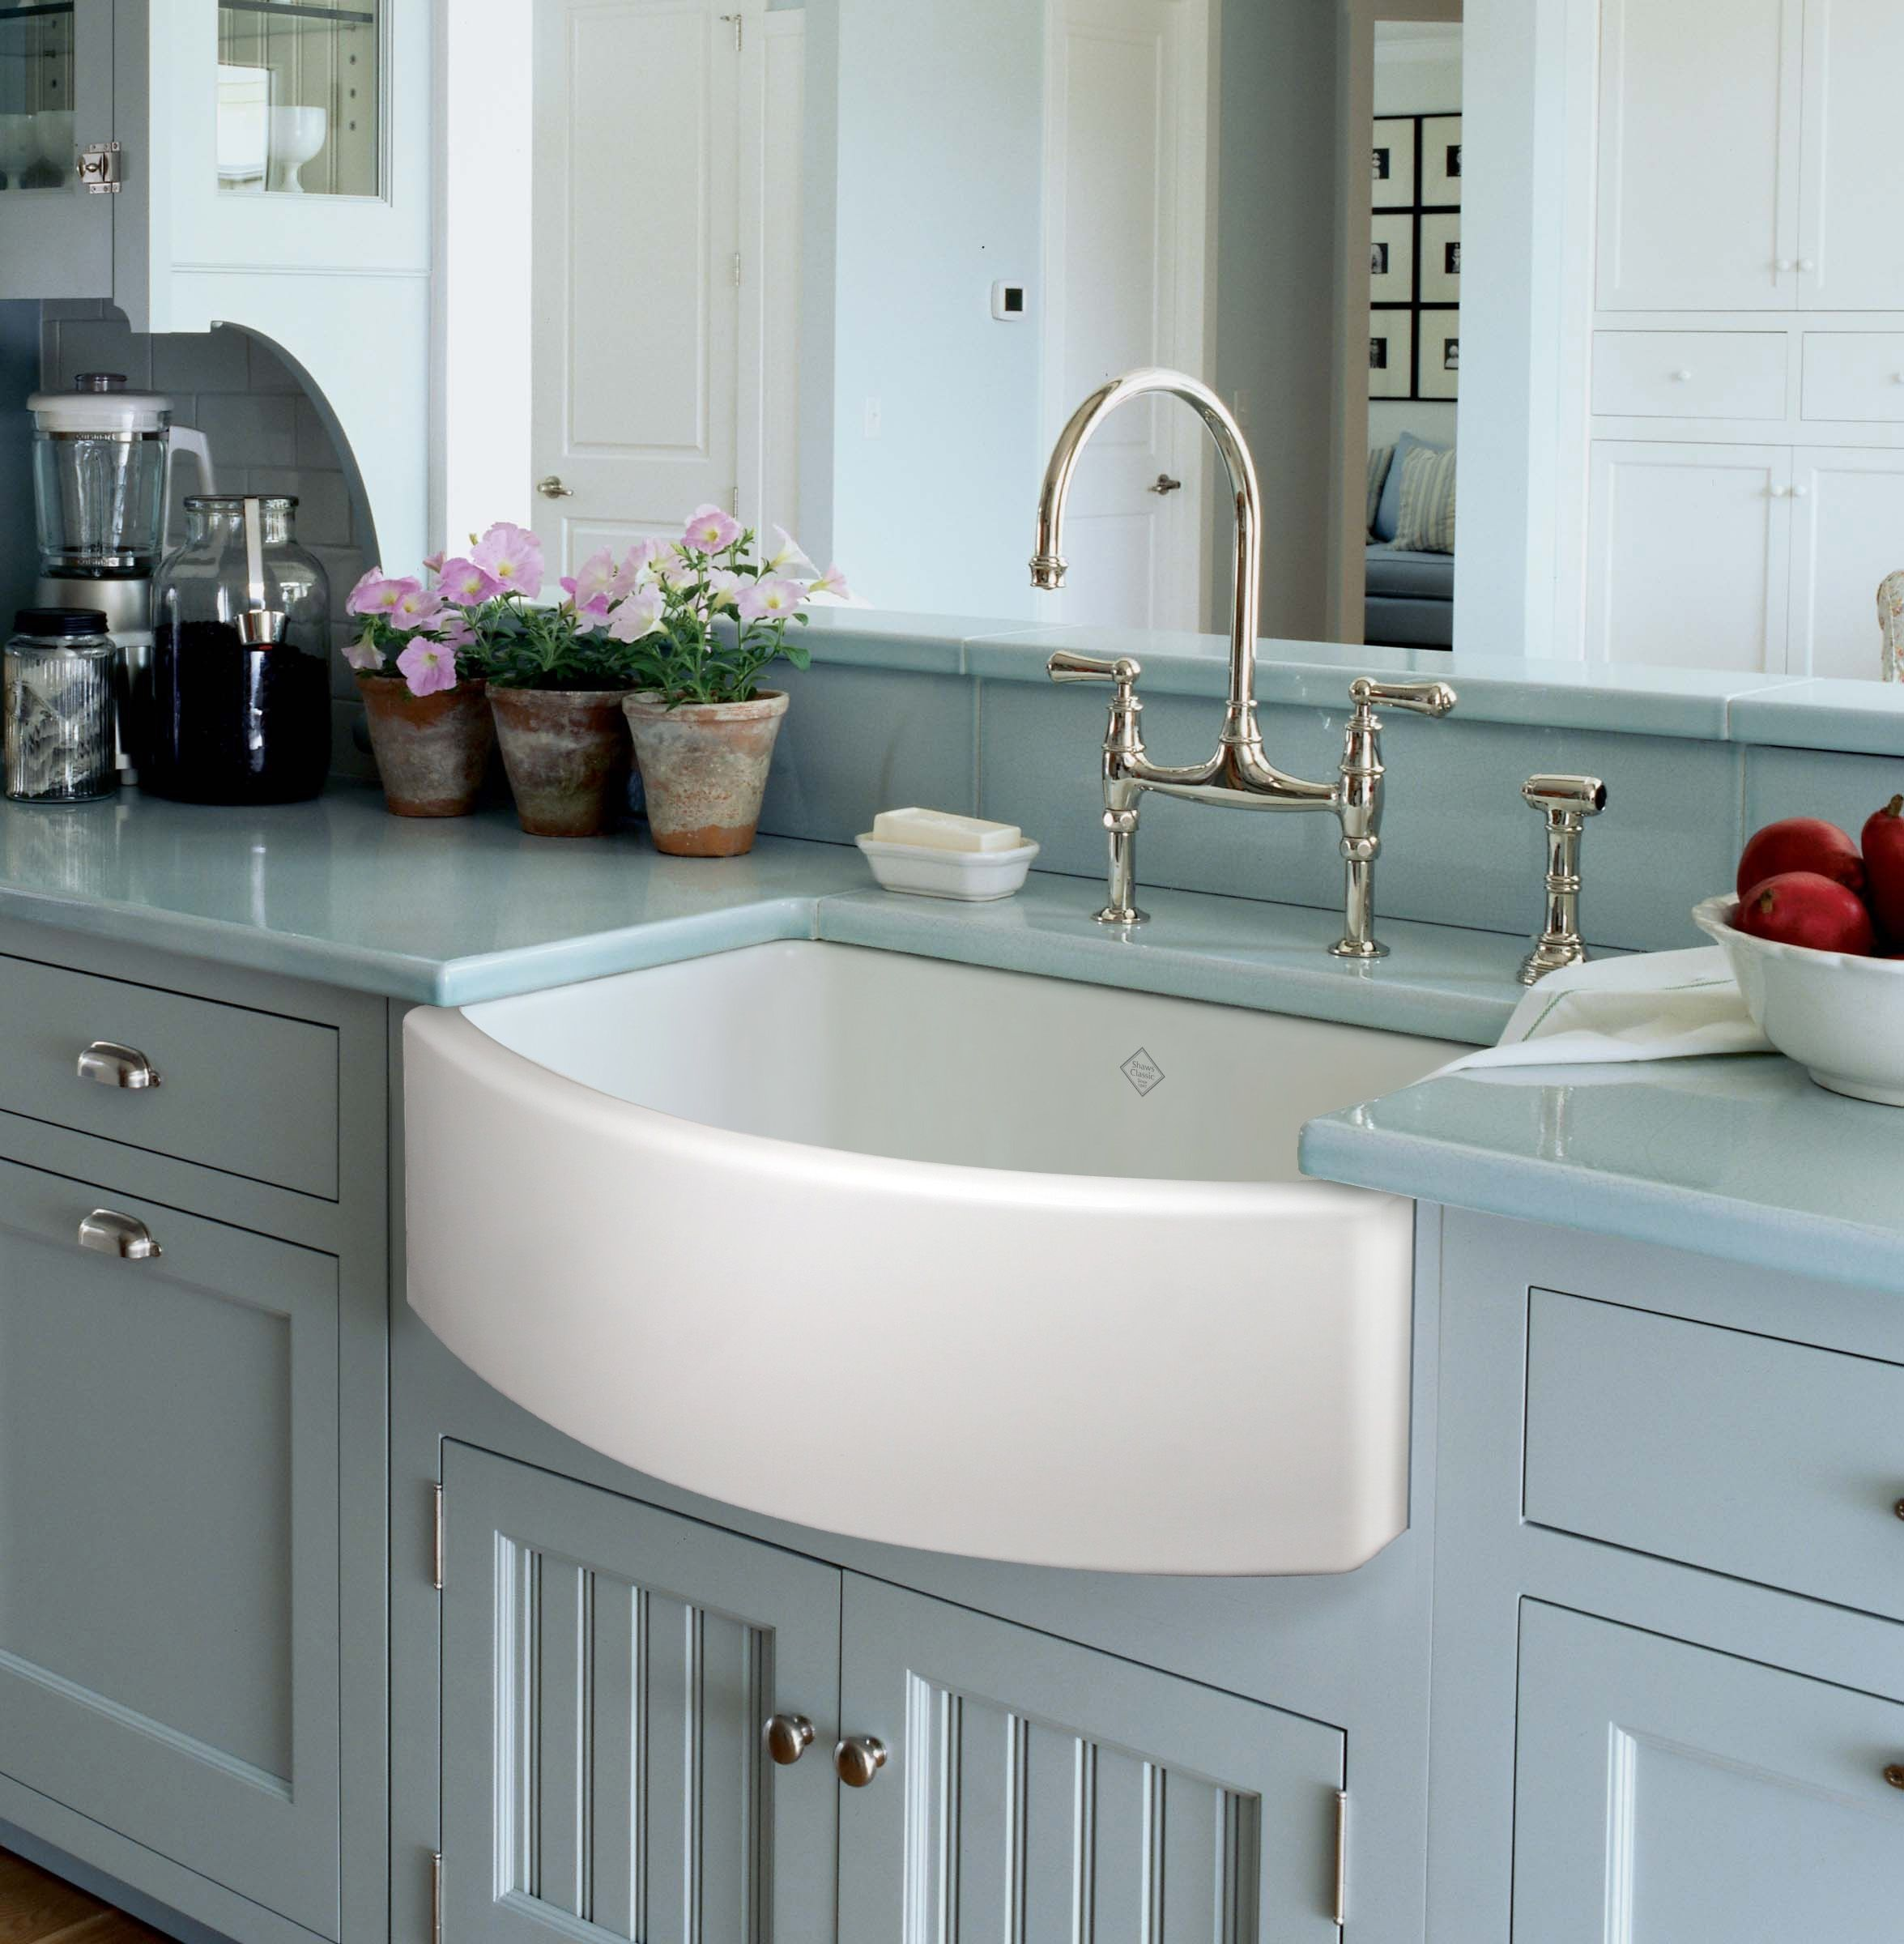 Best Kitchen Faucet For Farmhouse Sink Throughout Size 2351 X 2400